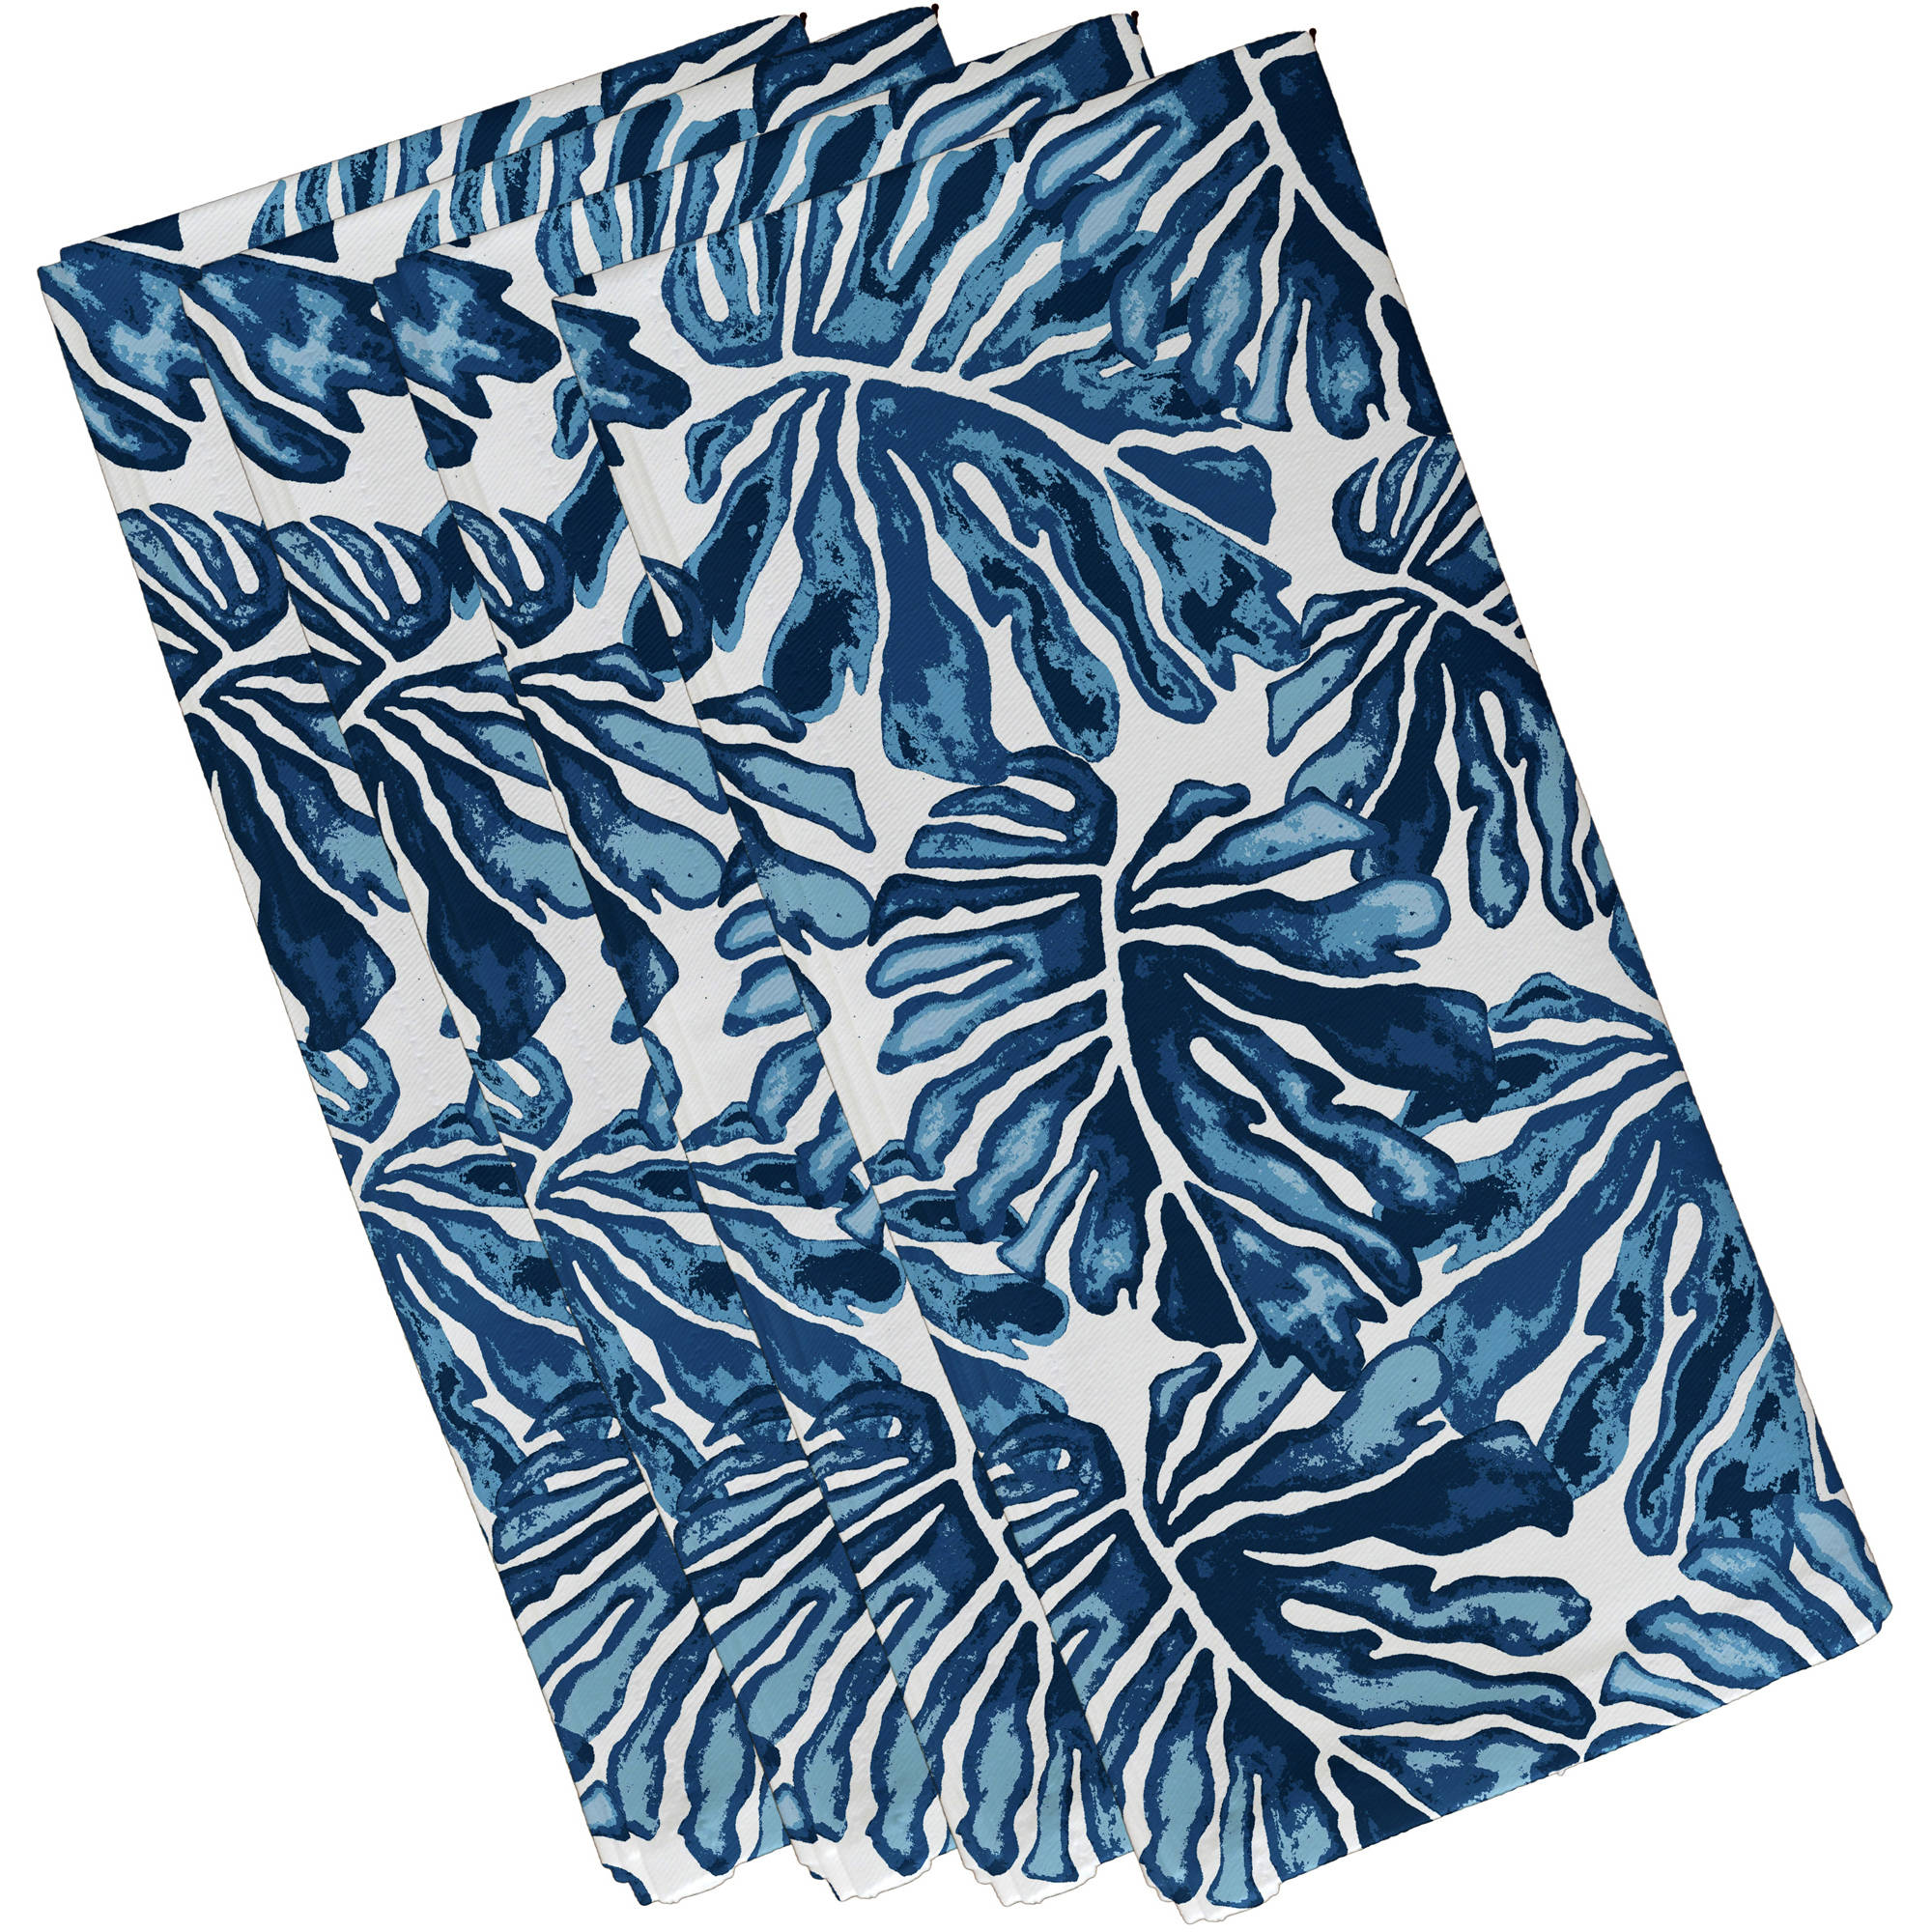 "Simply Daisy 19"" x 19"" Palm Leaves Floral Print Napkin (Set of 4)"